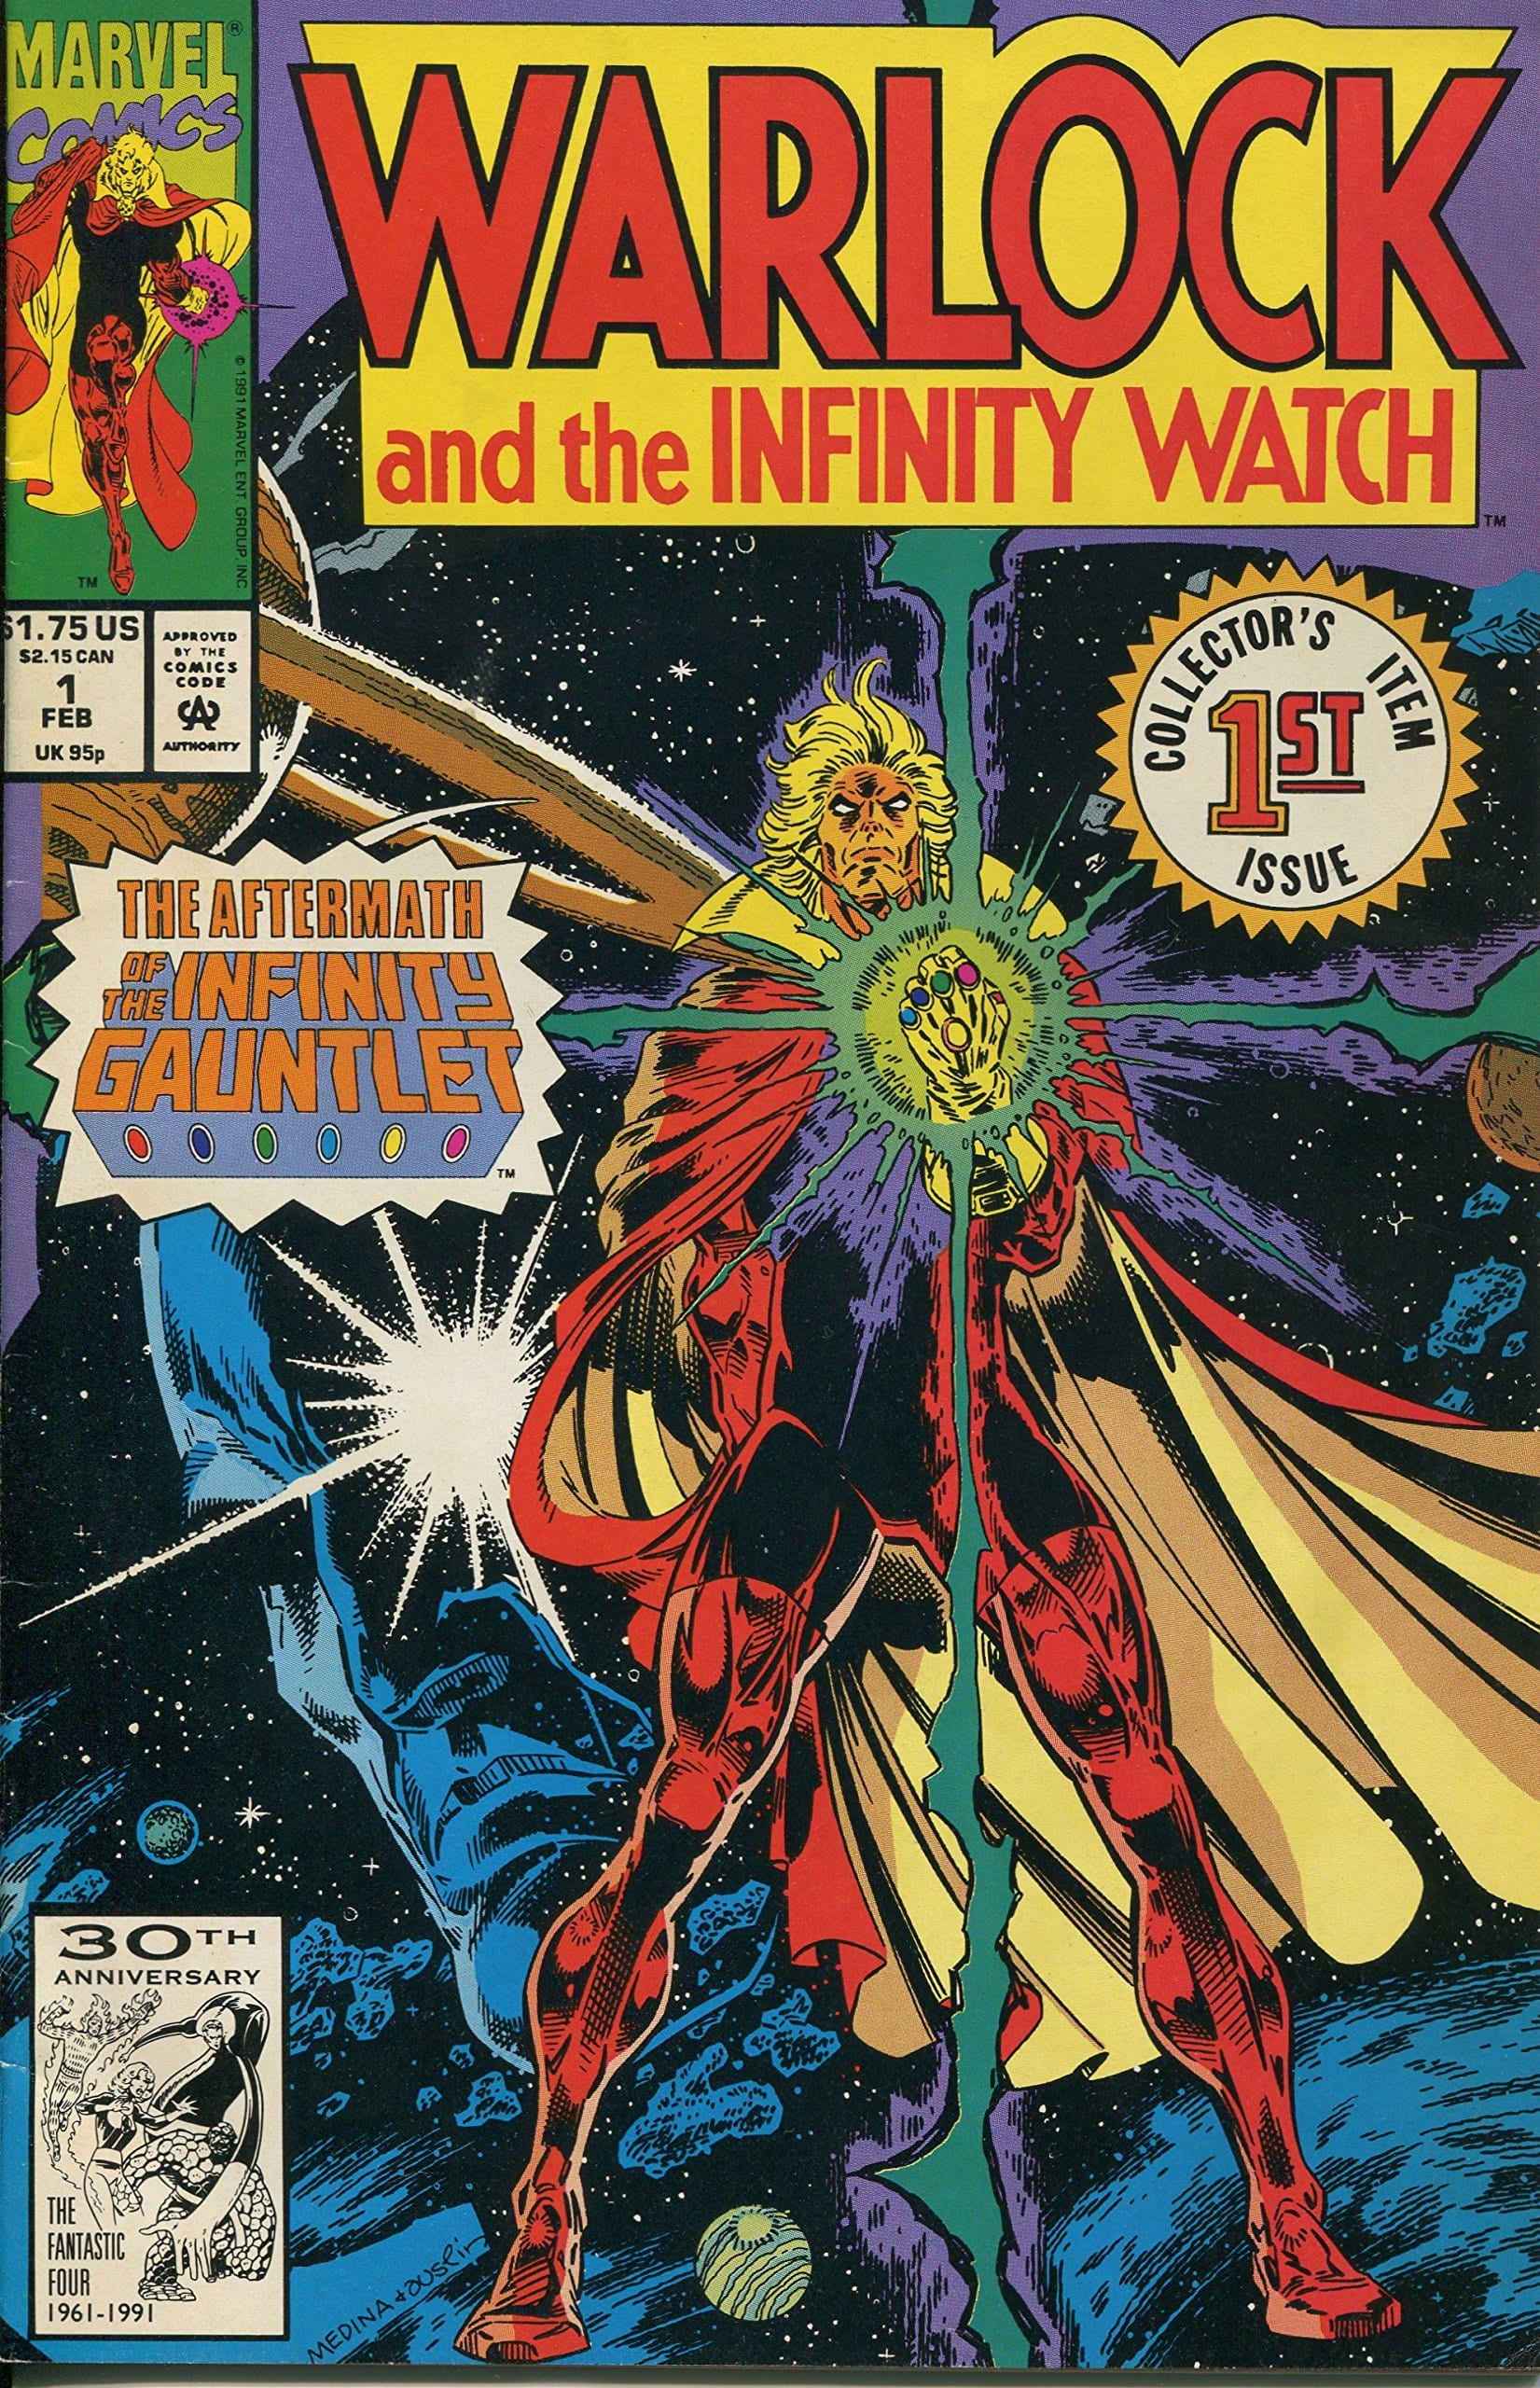 Comic completo Warlock and the Infinity Watch